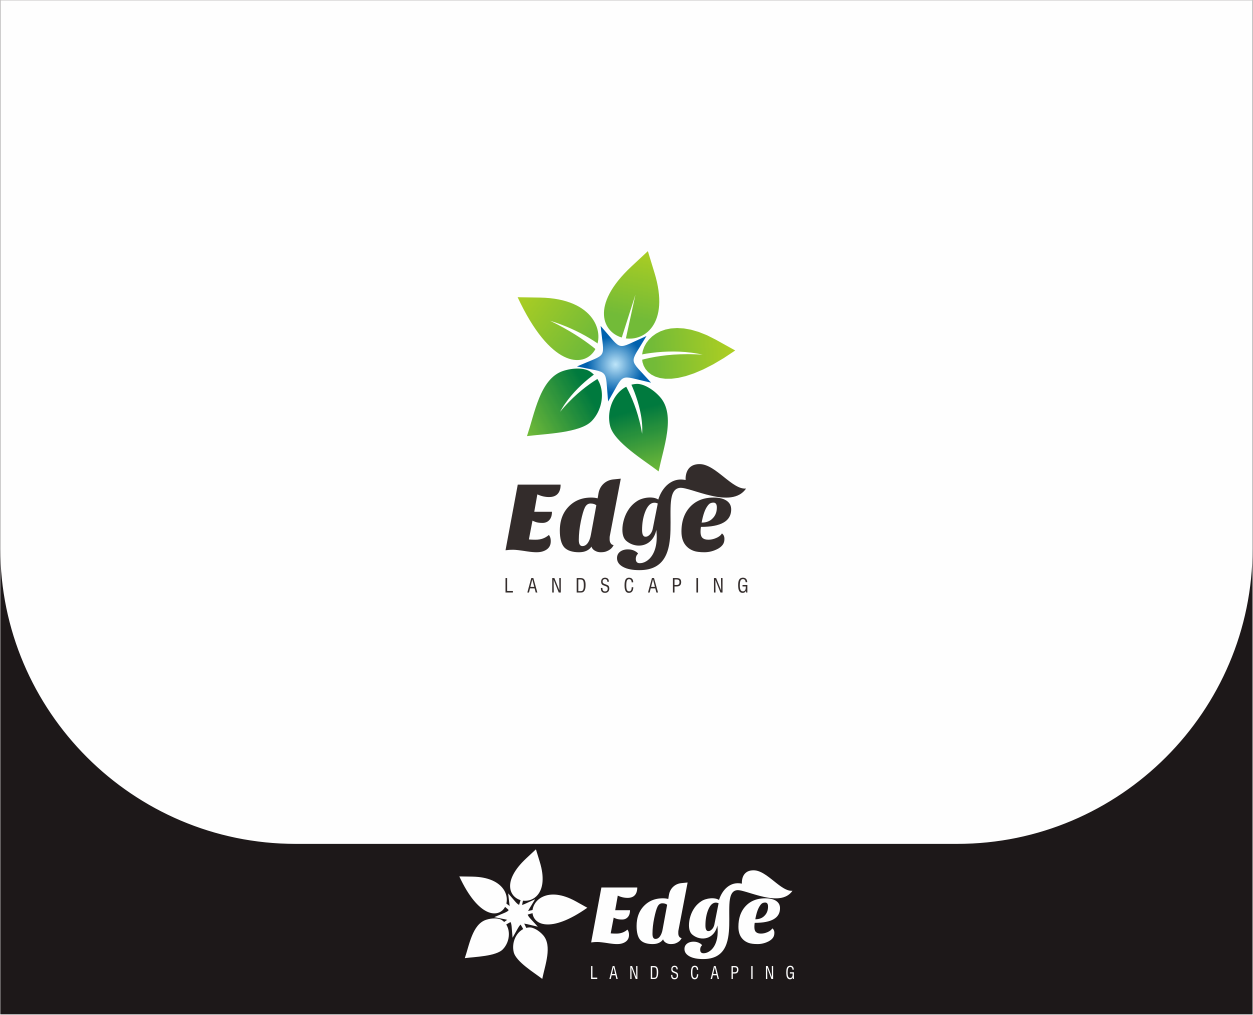 Logo Design by Armada Jamaluddin - Entry No. 217 in the Logo Design Contest Inspiring Logo Design for Edge Landscaping.